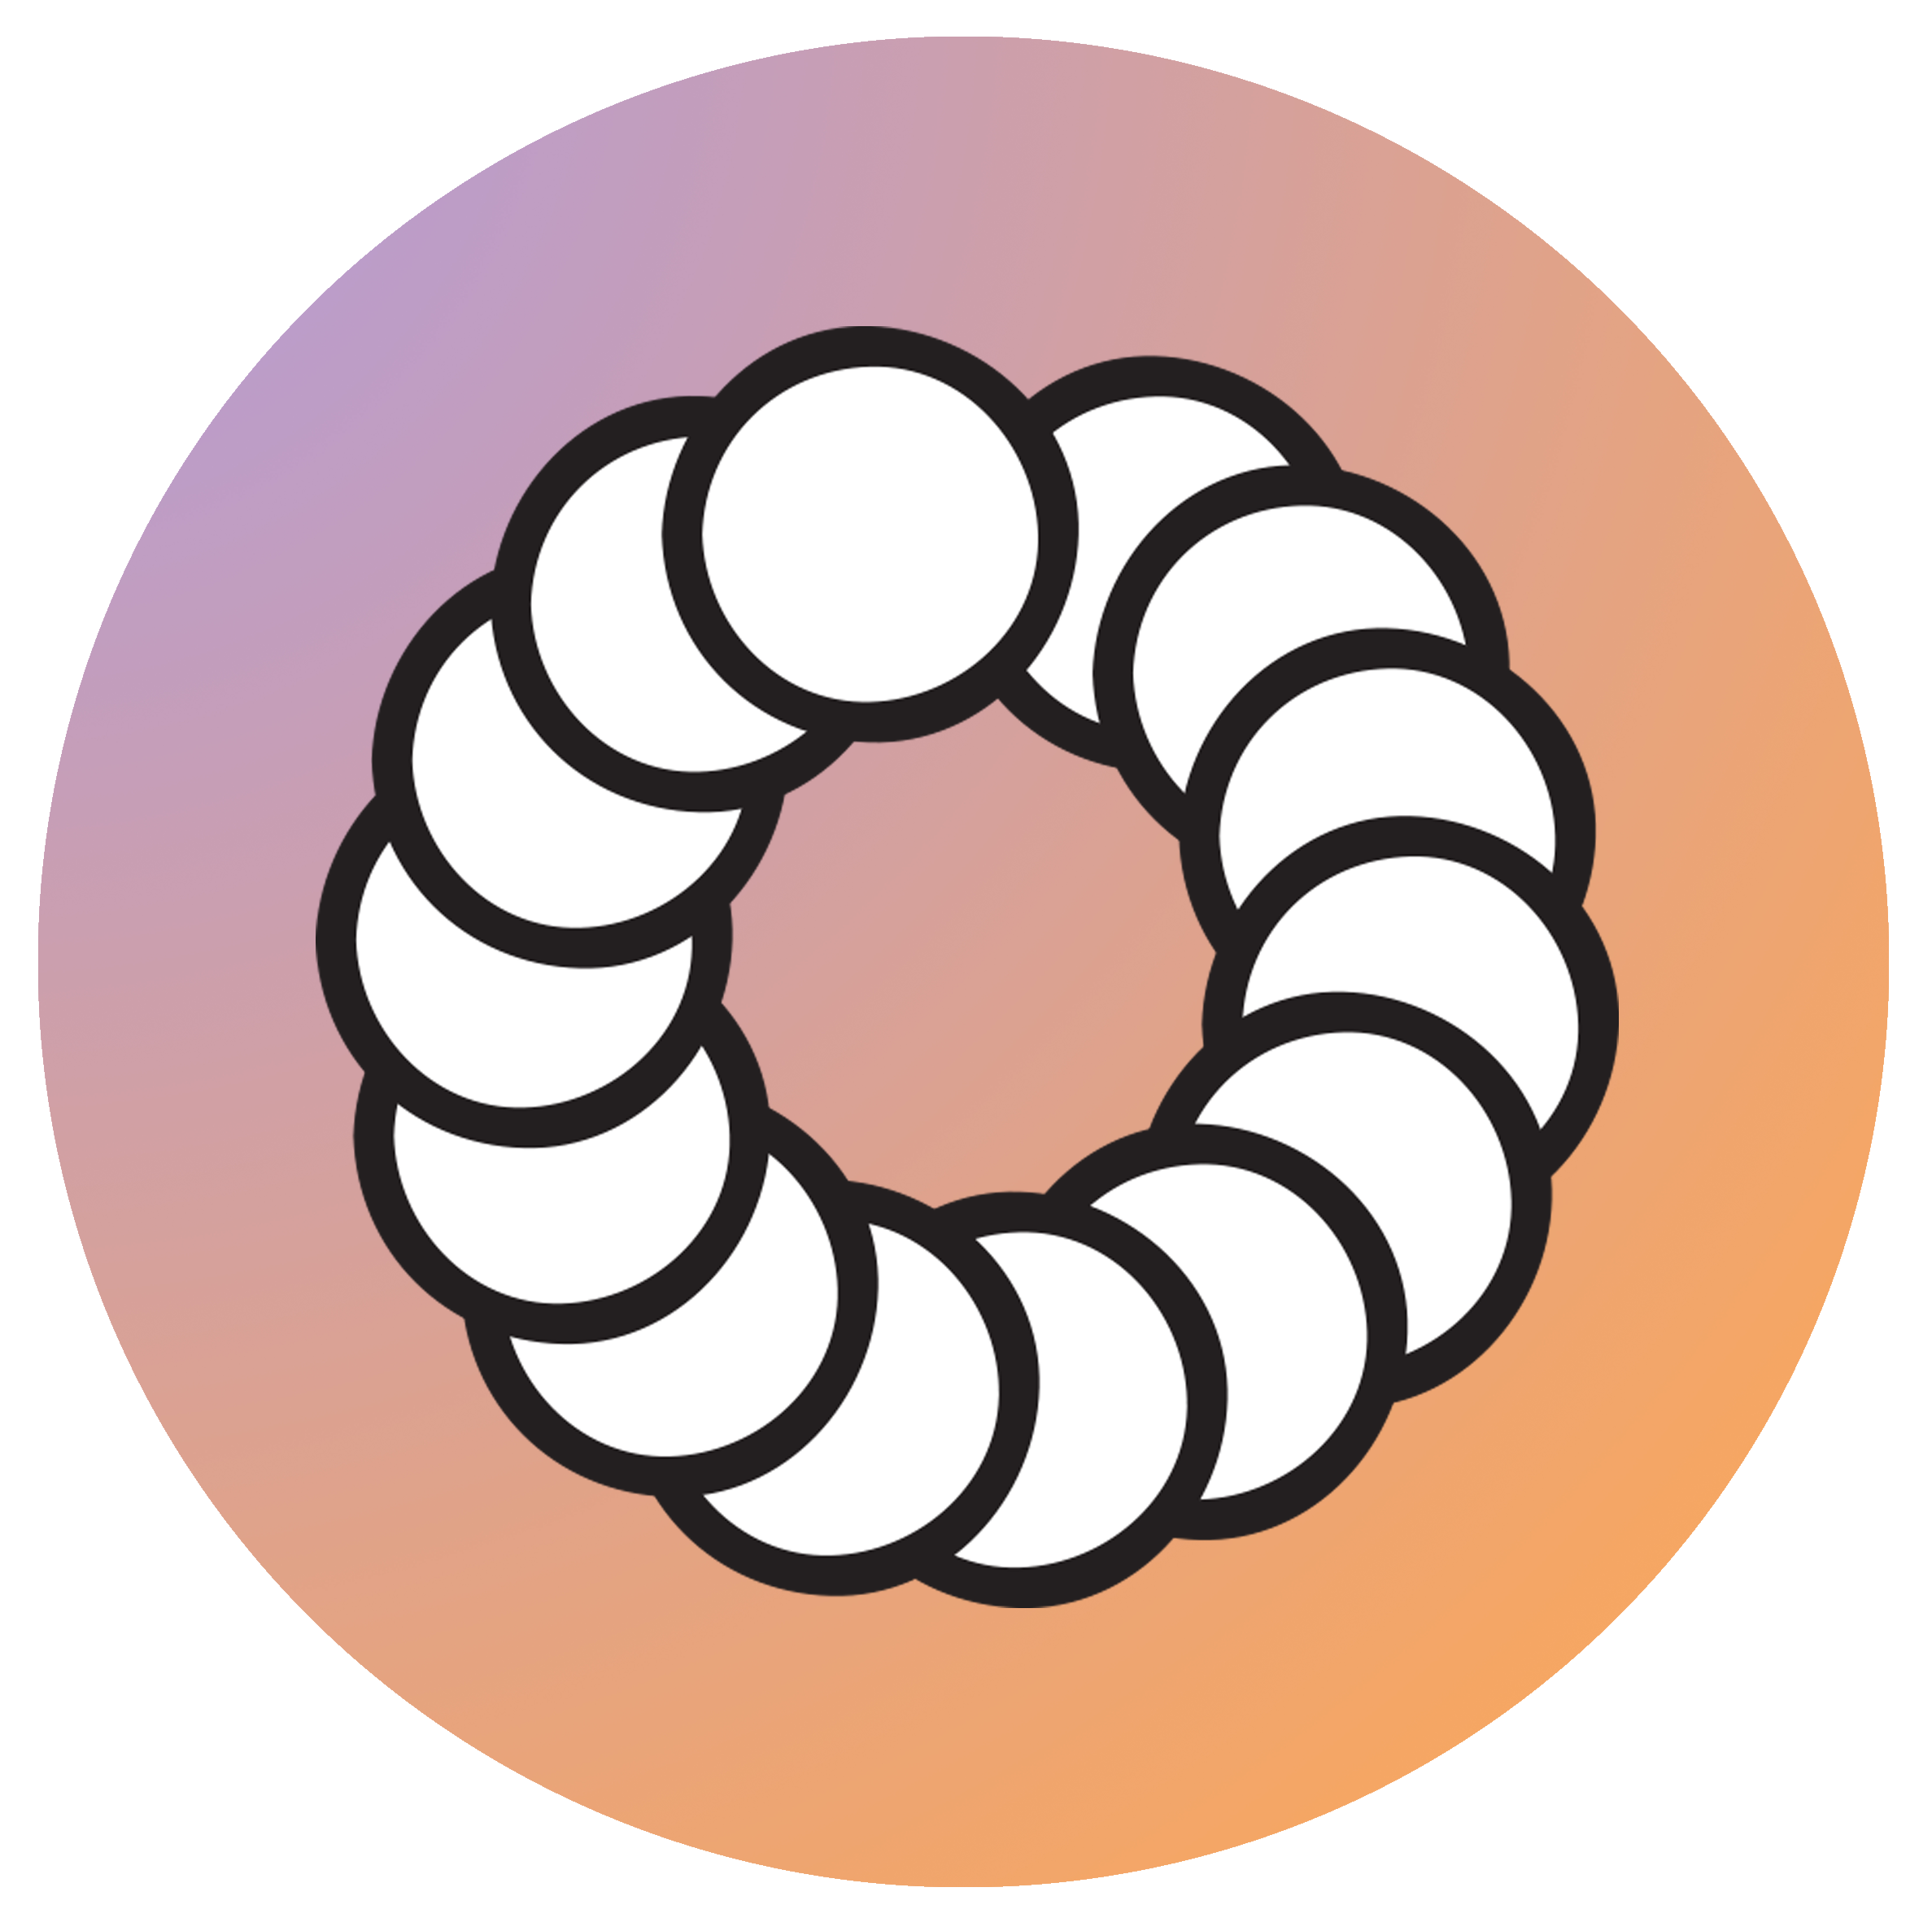 GRADIENT-CIRLCE-WITH-MULTIPLE-CIRCLES.png